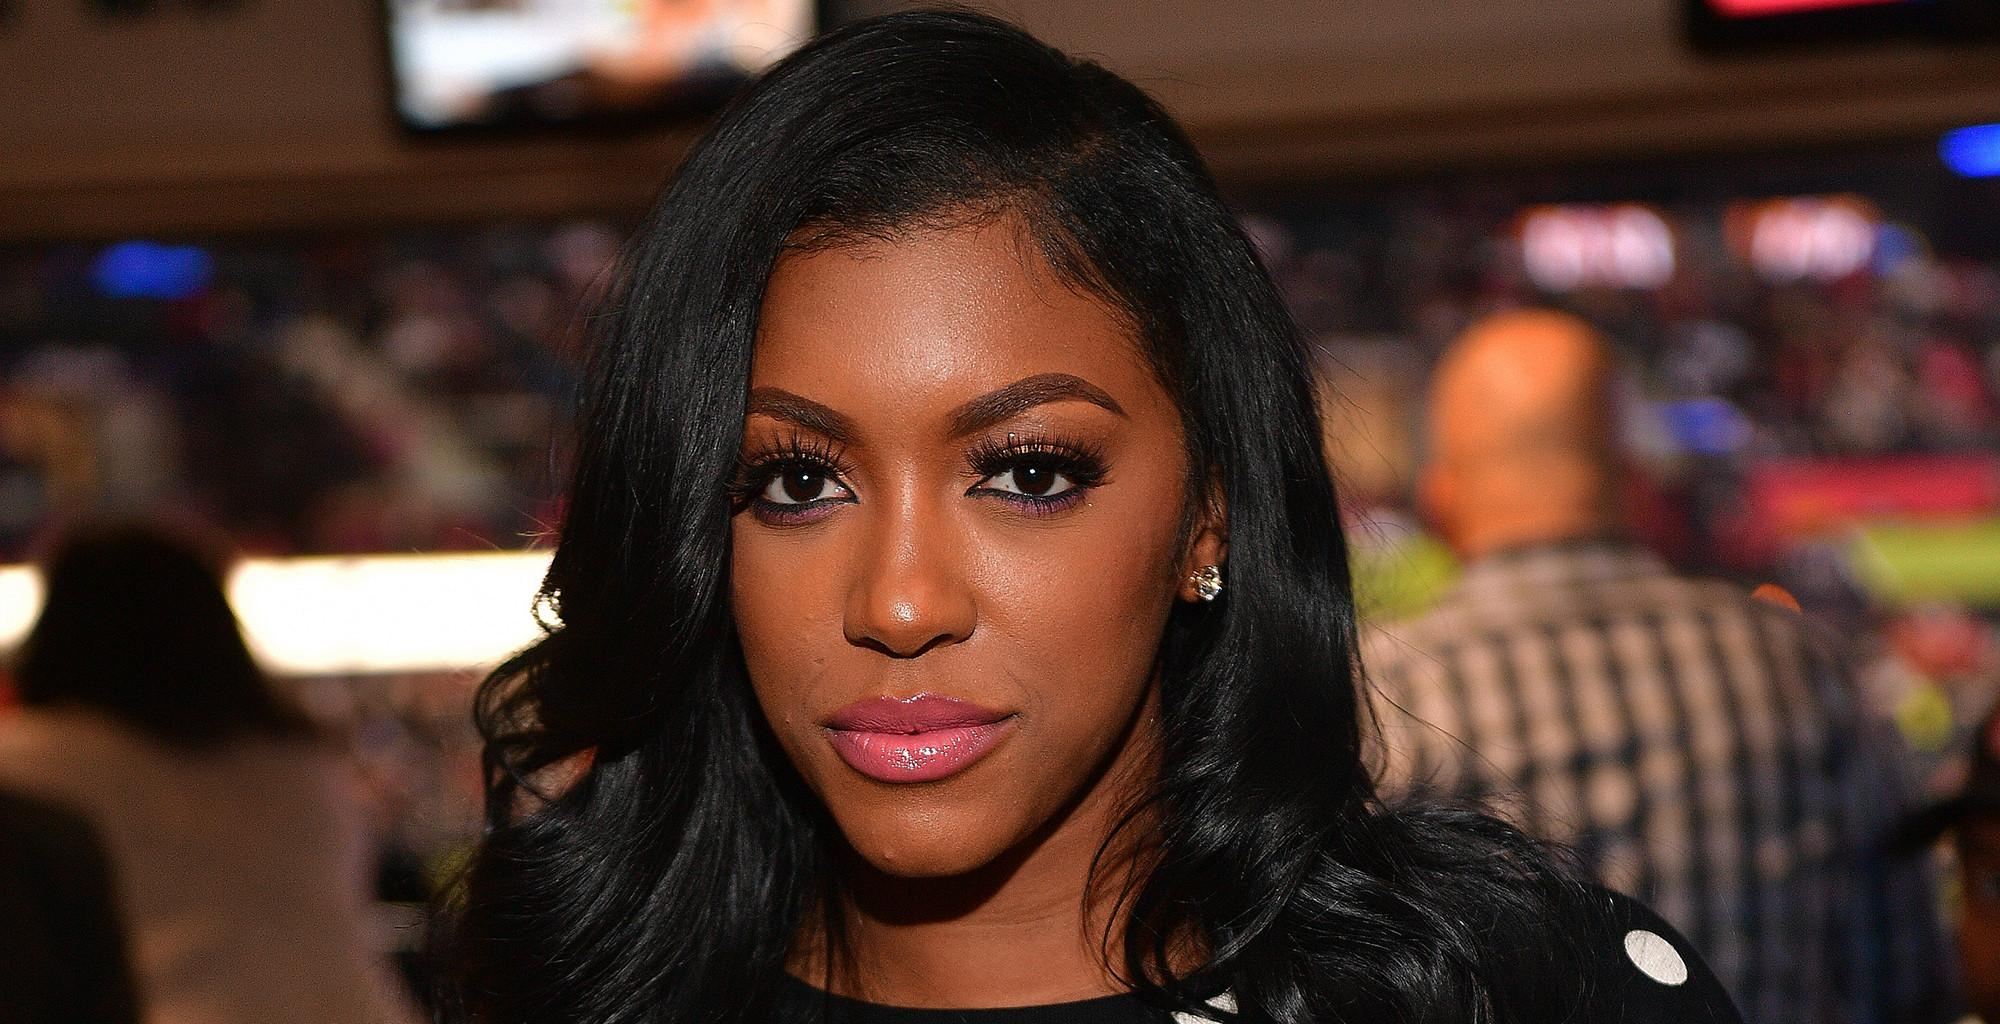 Porsha Williams Shares A RHOA Throwback Pic From Japan - Fans Call Her The Queen Of Fashion